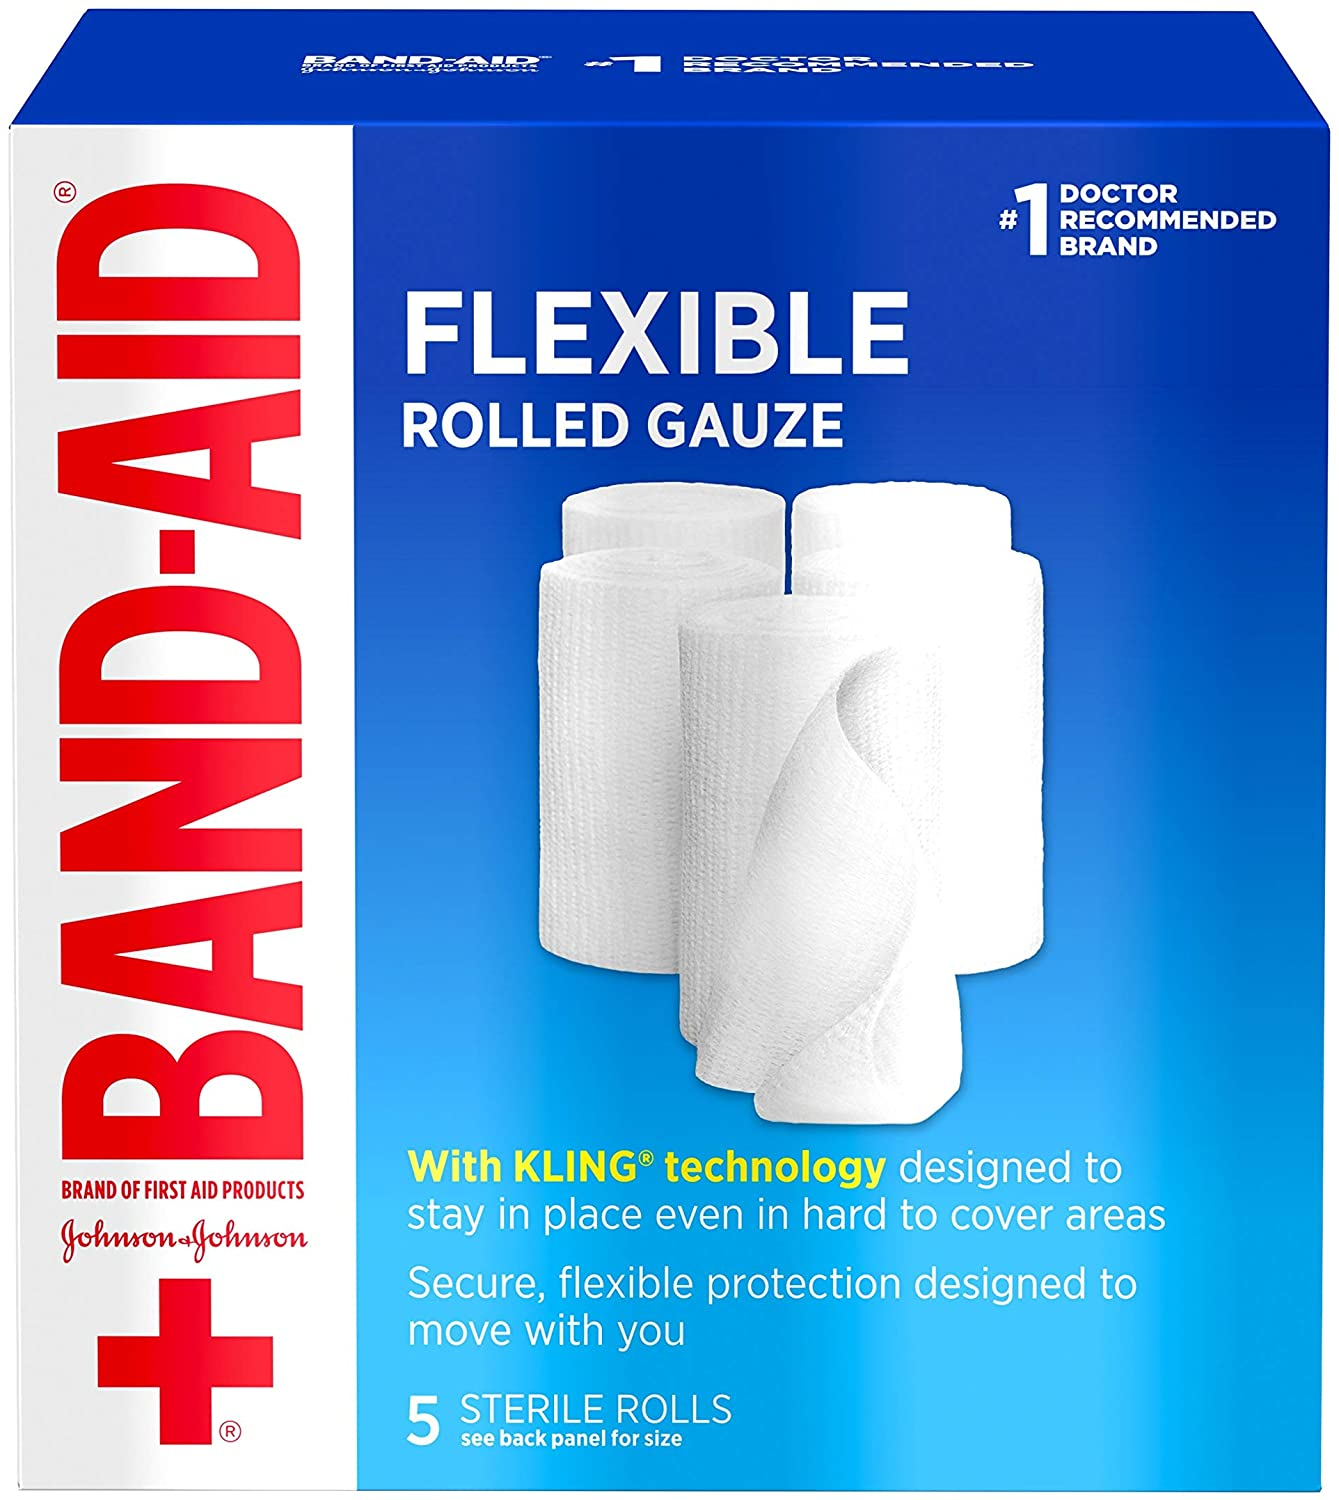 Band Aid Brand of First Aid Products Flexible Rolled Gauze Dressing for Minor Wound Care, Soft Padding and Instant Absorption, 3 Inches by 2.1 Yards, Value Pack 5 ct: Health & Personal Care